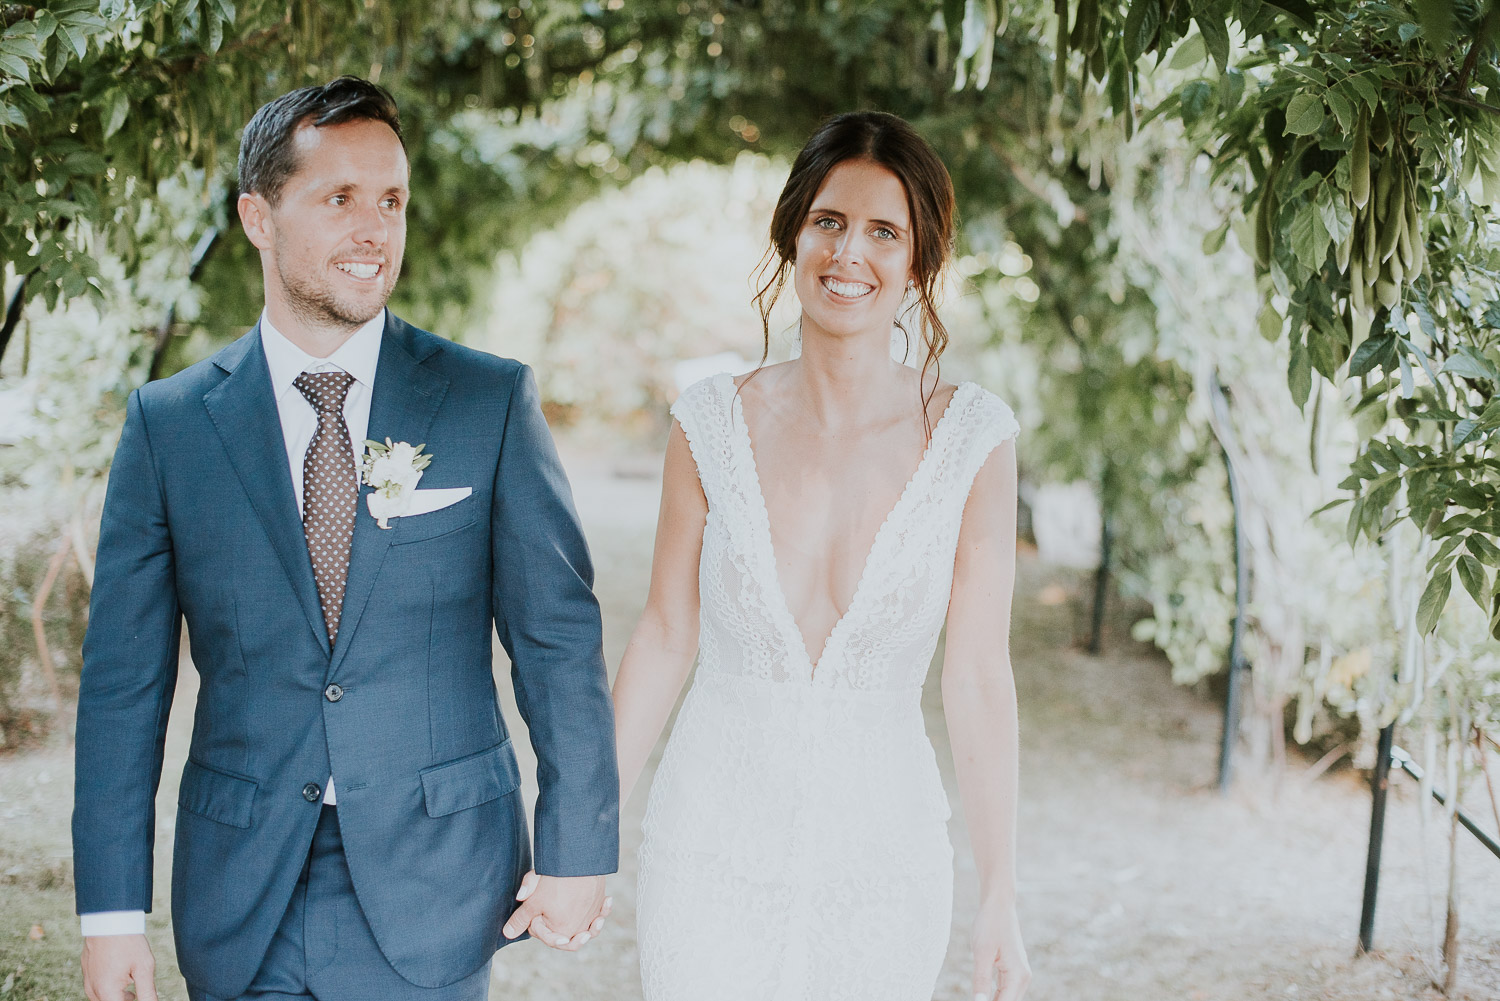 bergerac_wedding_katy_webb_photography_france_UK119